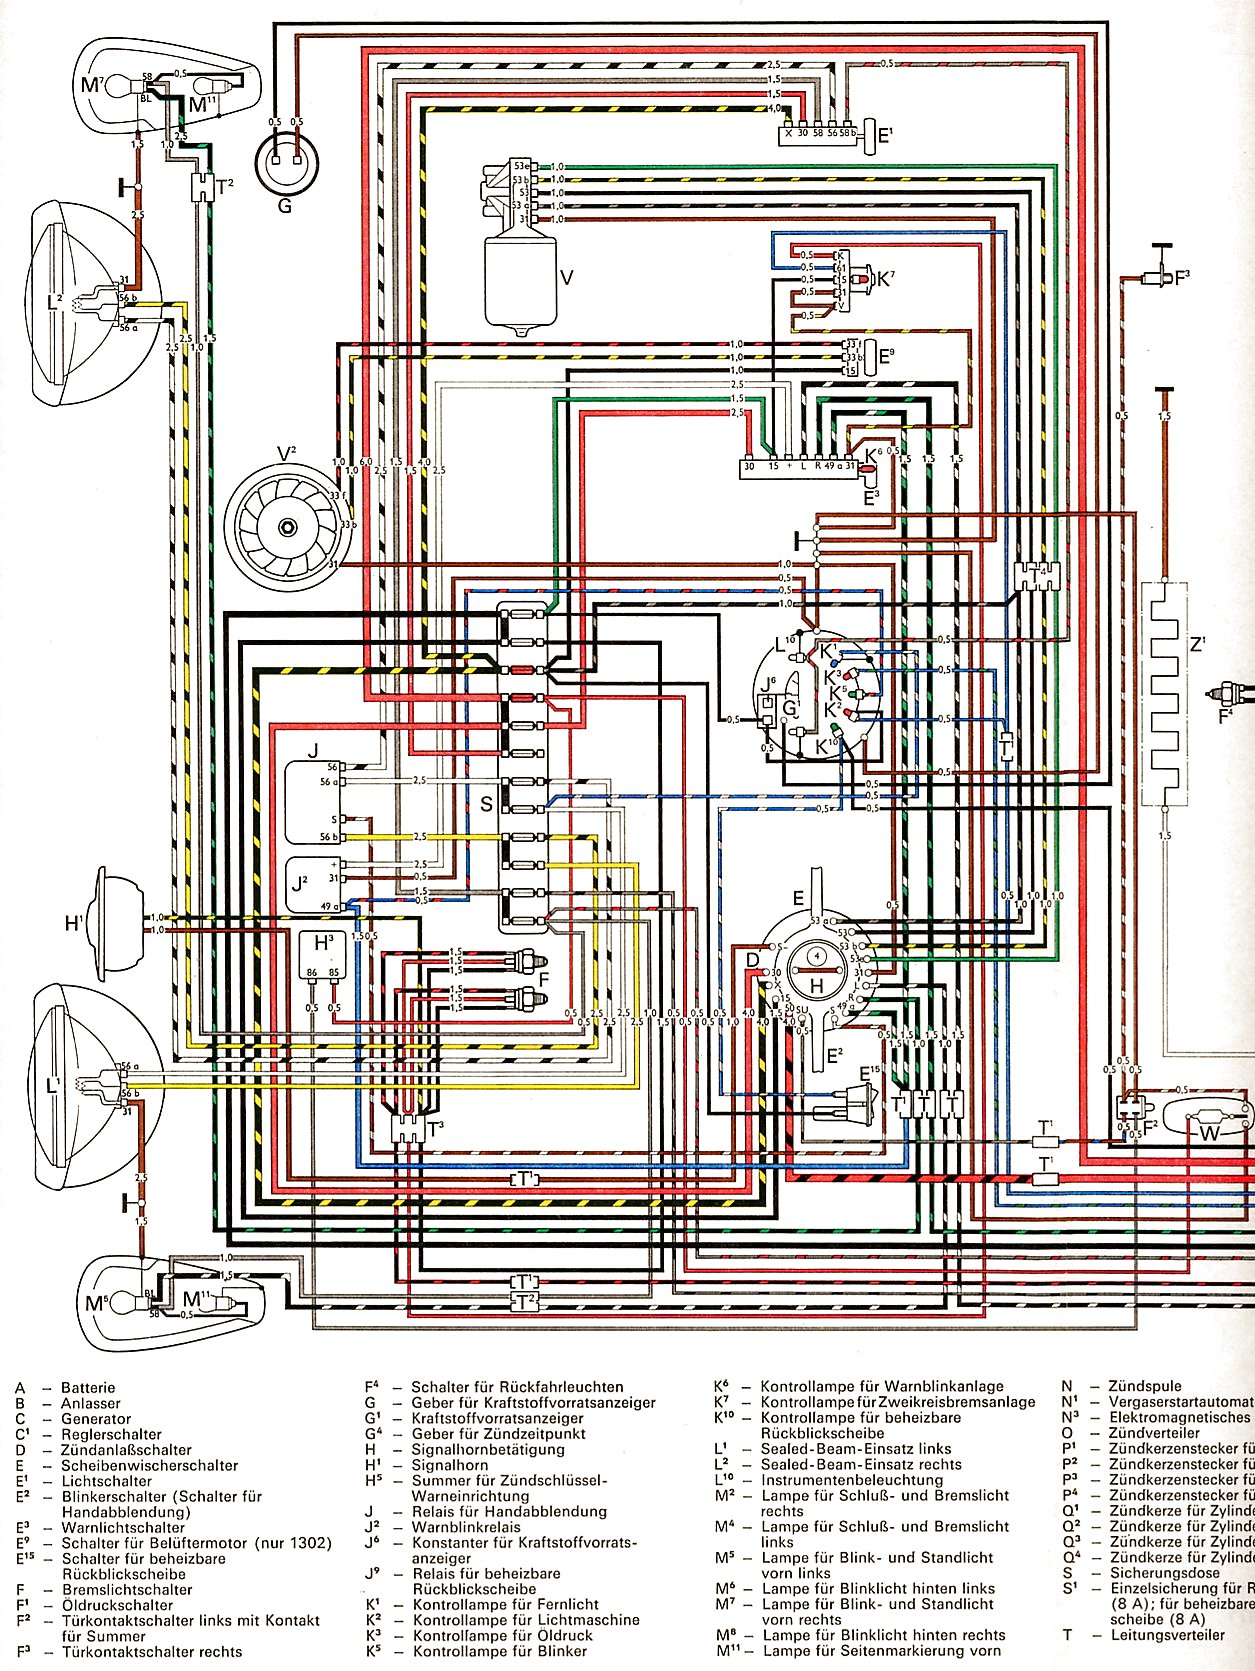 1300_and_1302_USA_from_August_1971 1 wiring help 1974 vw beetle shoptalkforums com 1973 vw beetle wiring diagram at virtualis.co